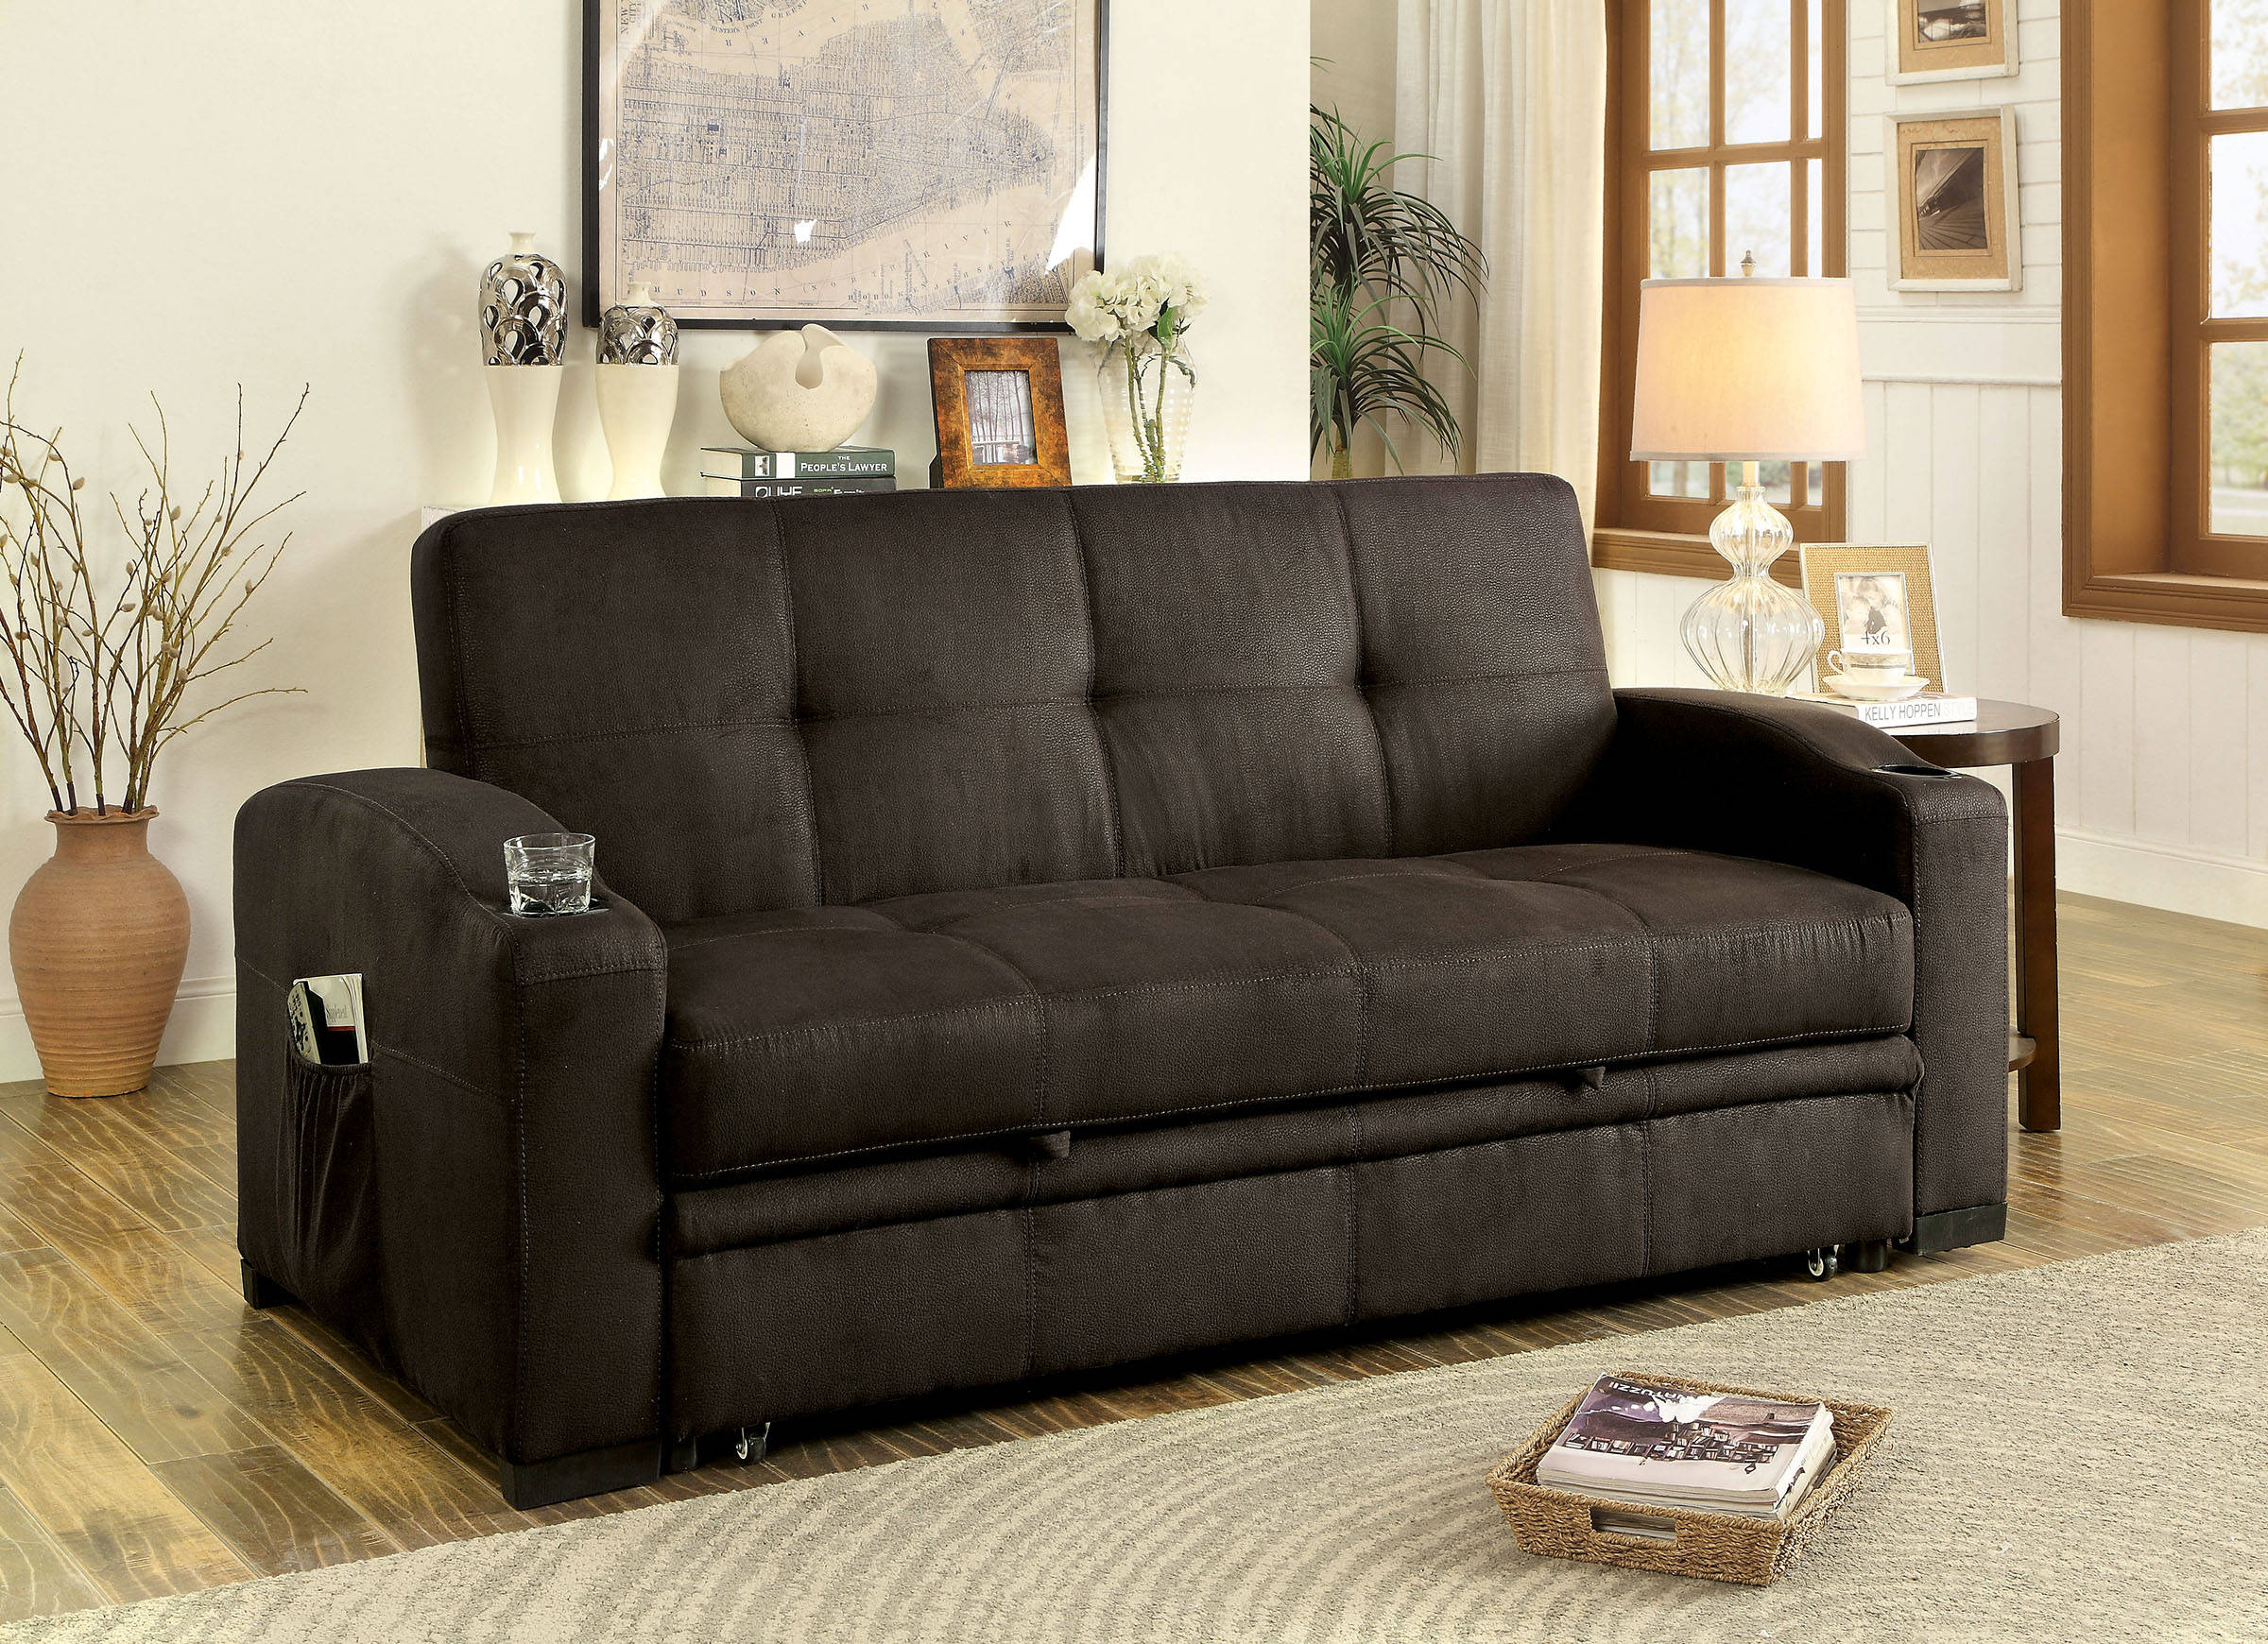 Furniture of America Mavis Futon Sofa | The Classy Home